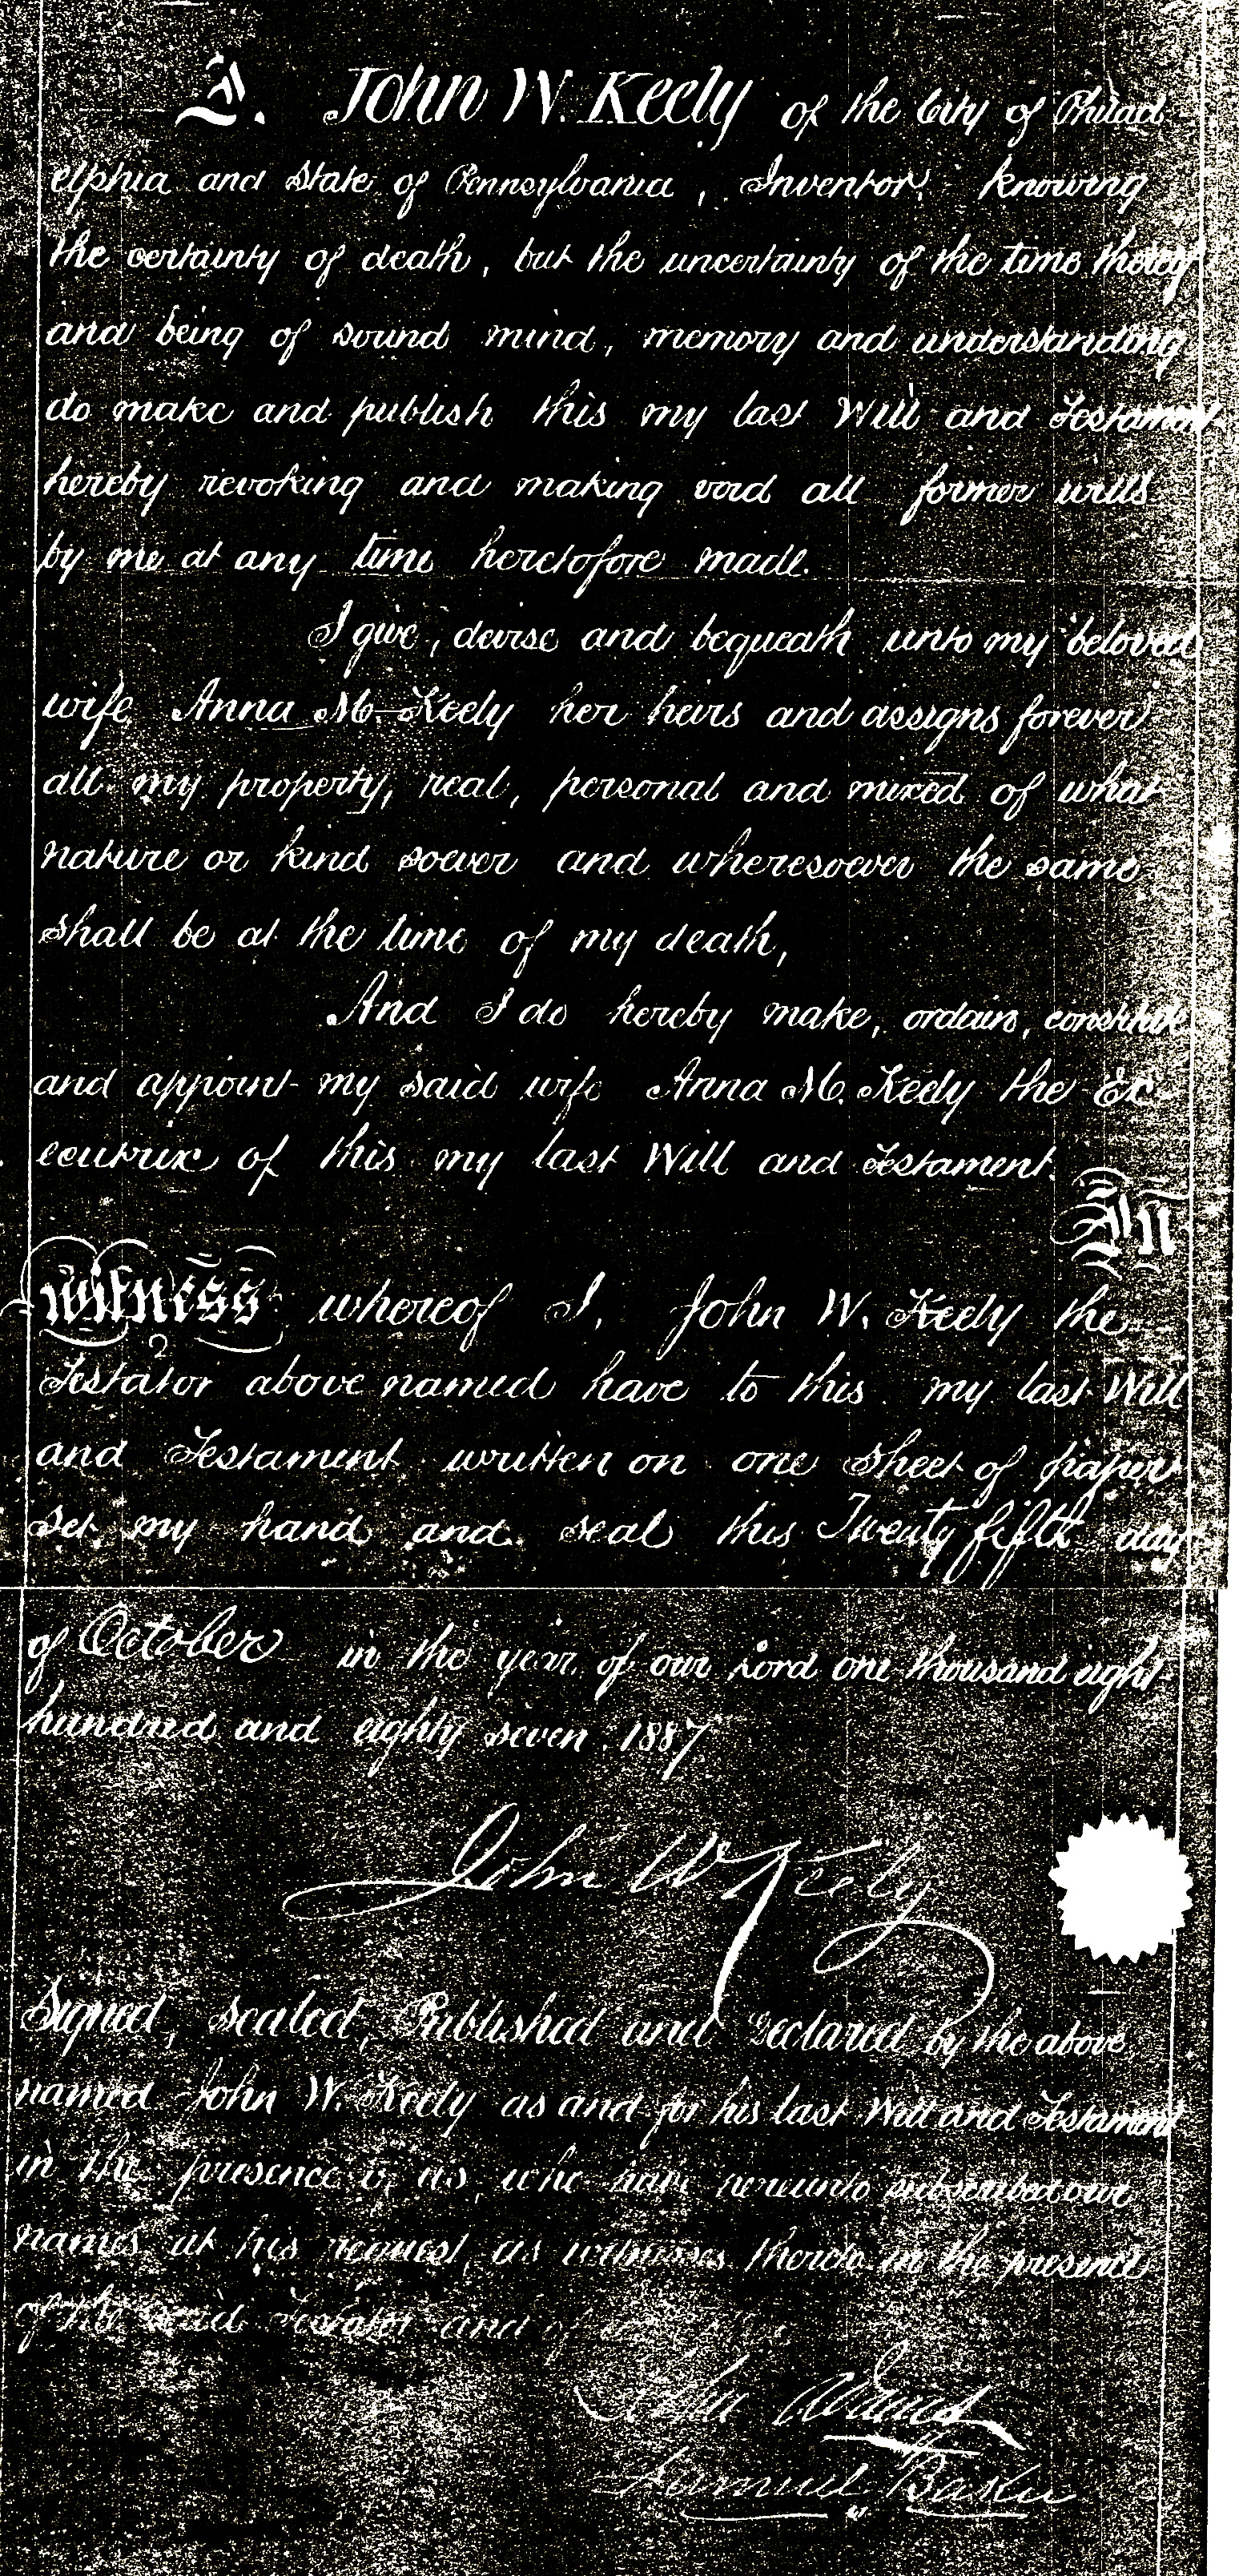 John W Keely's Last Will and Testament